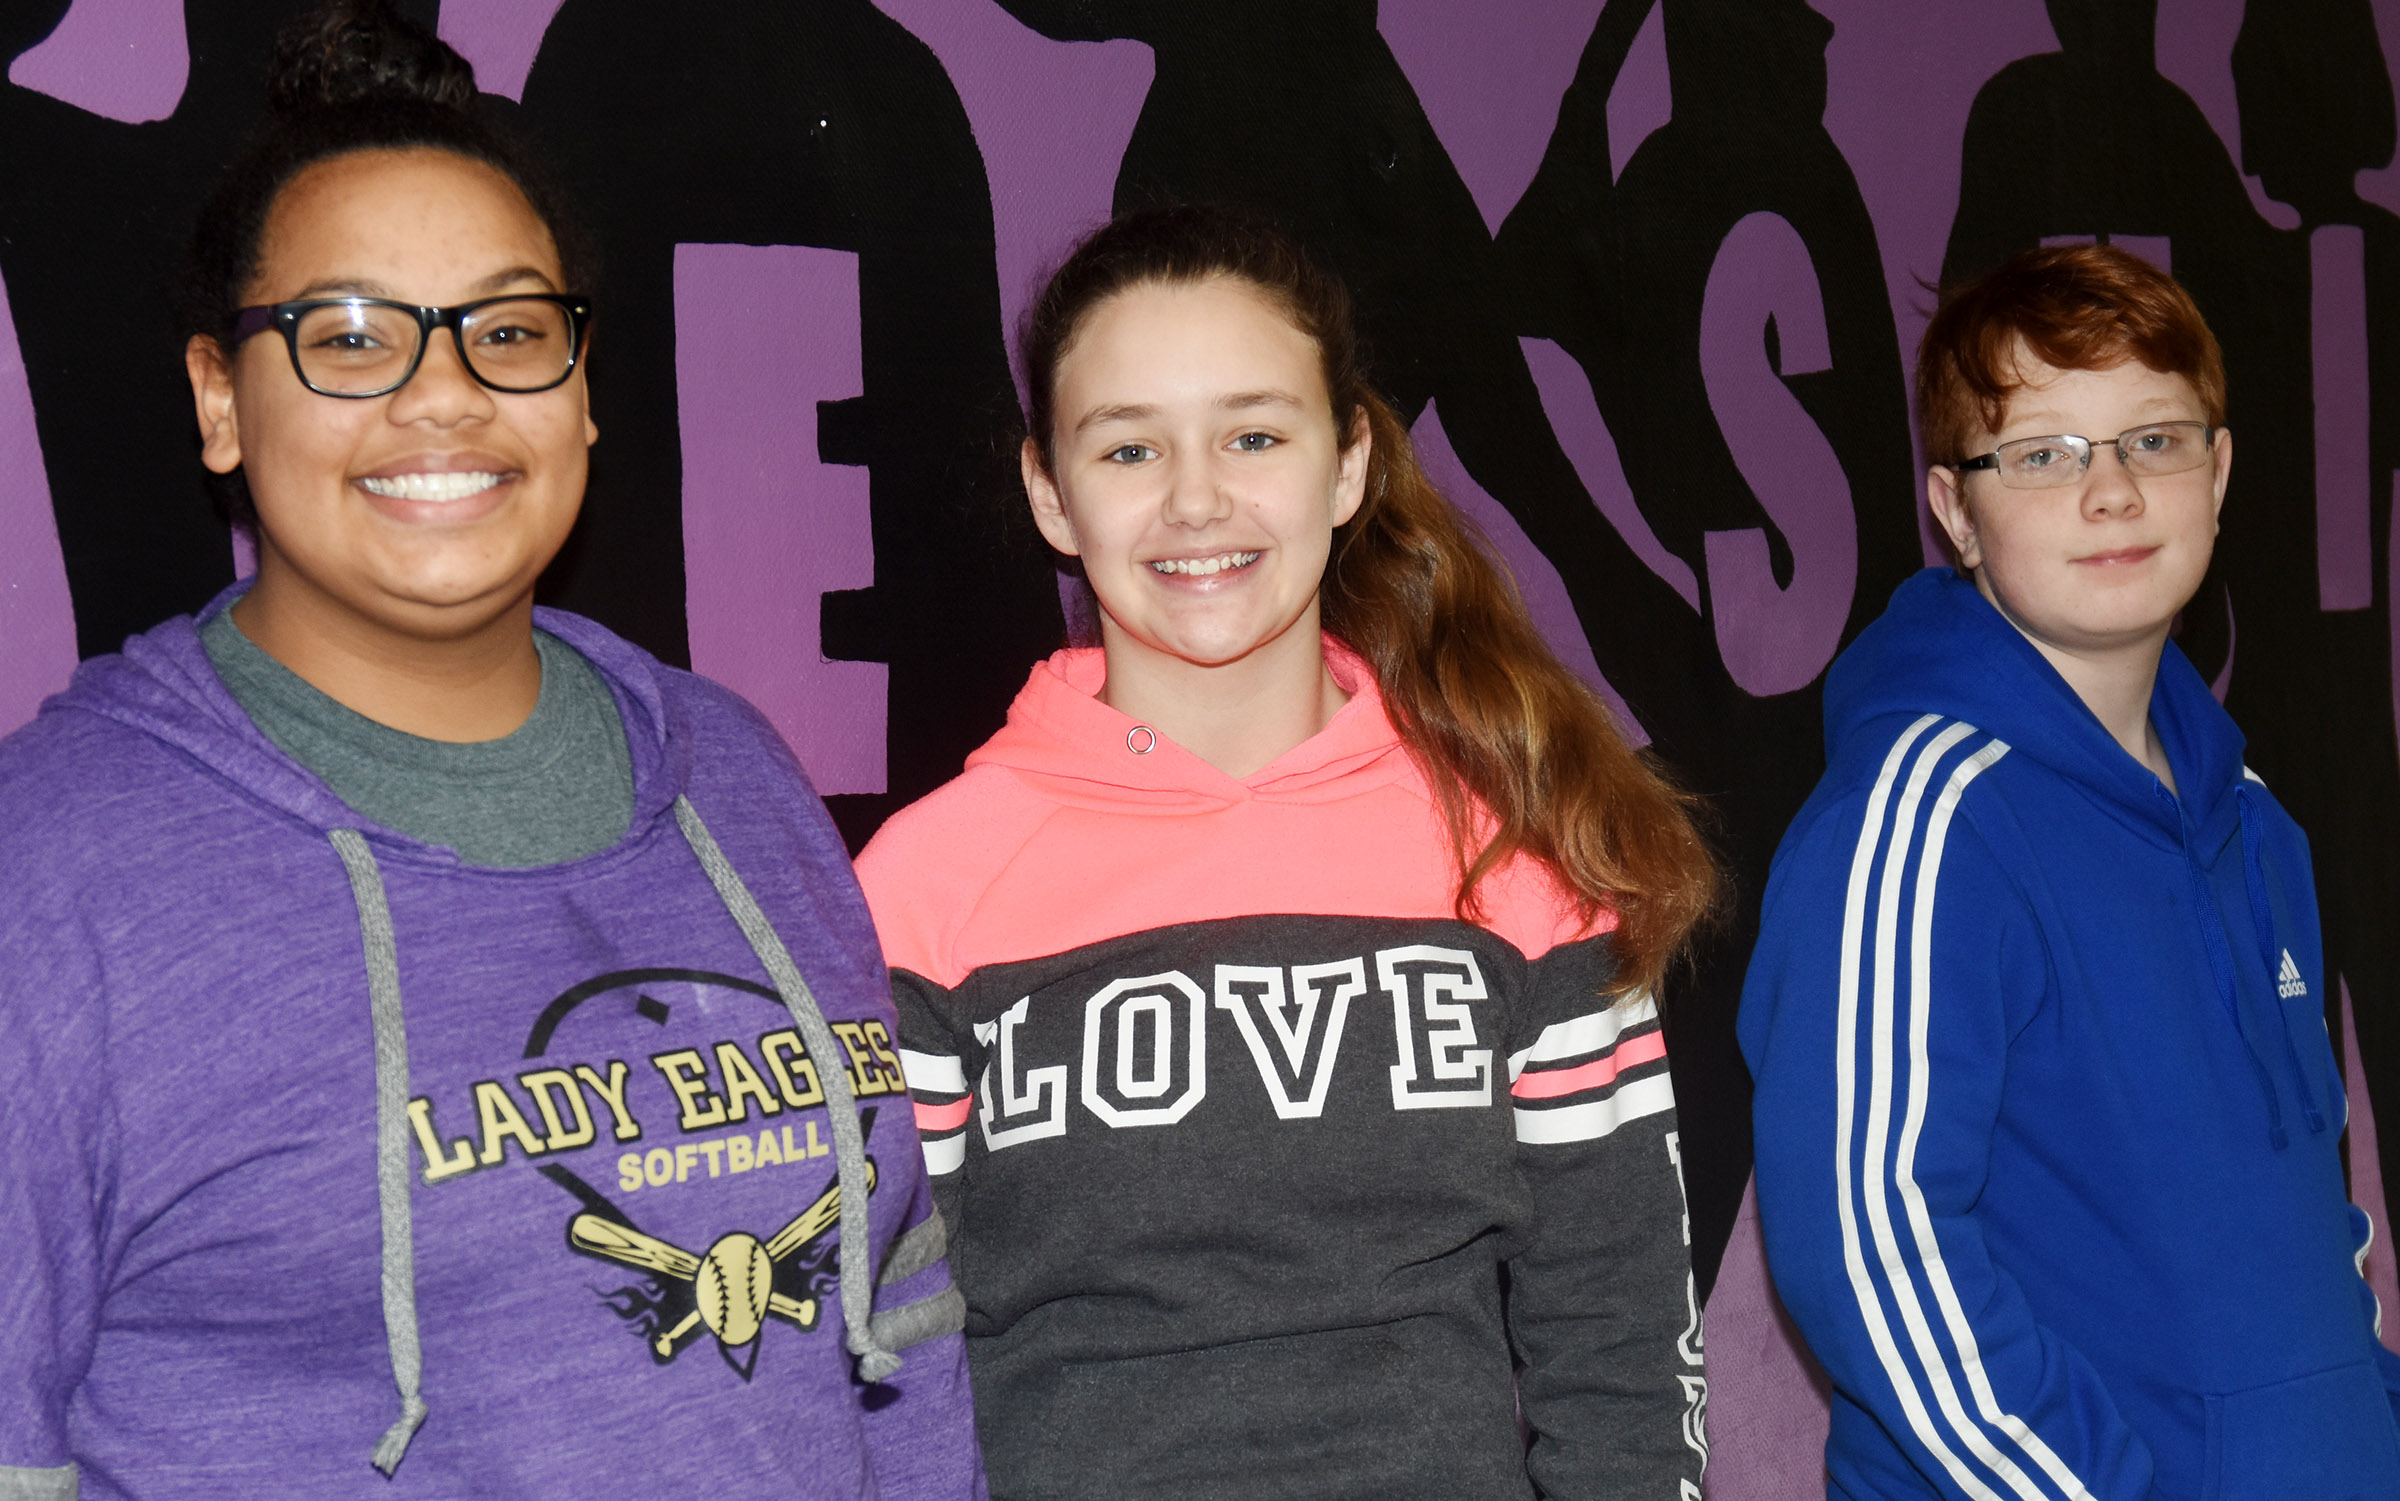 From left are eighth-grader Brae Washington, seventh-grader Haylee Allen and sixth-grader Conner Rinehart.